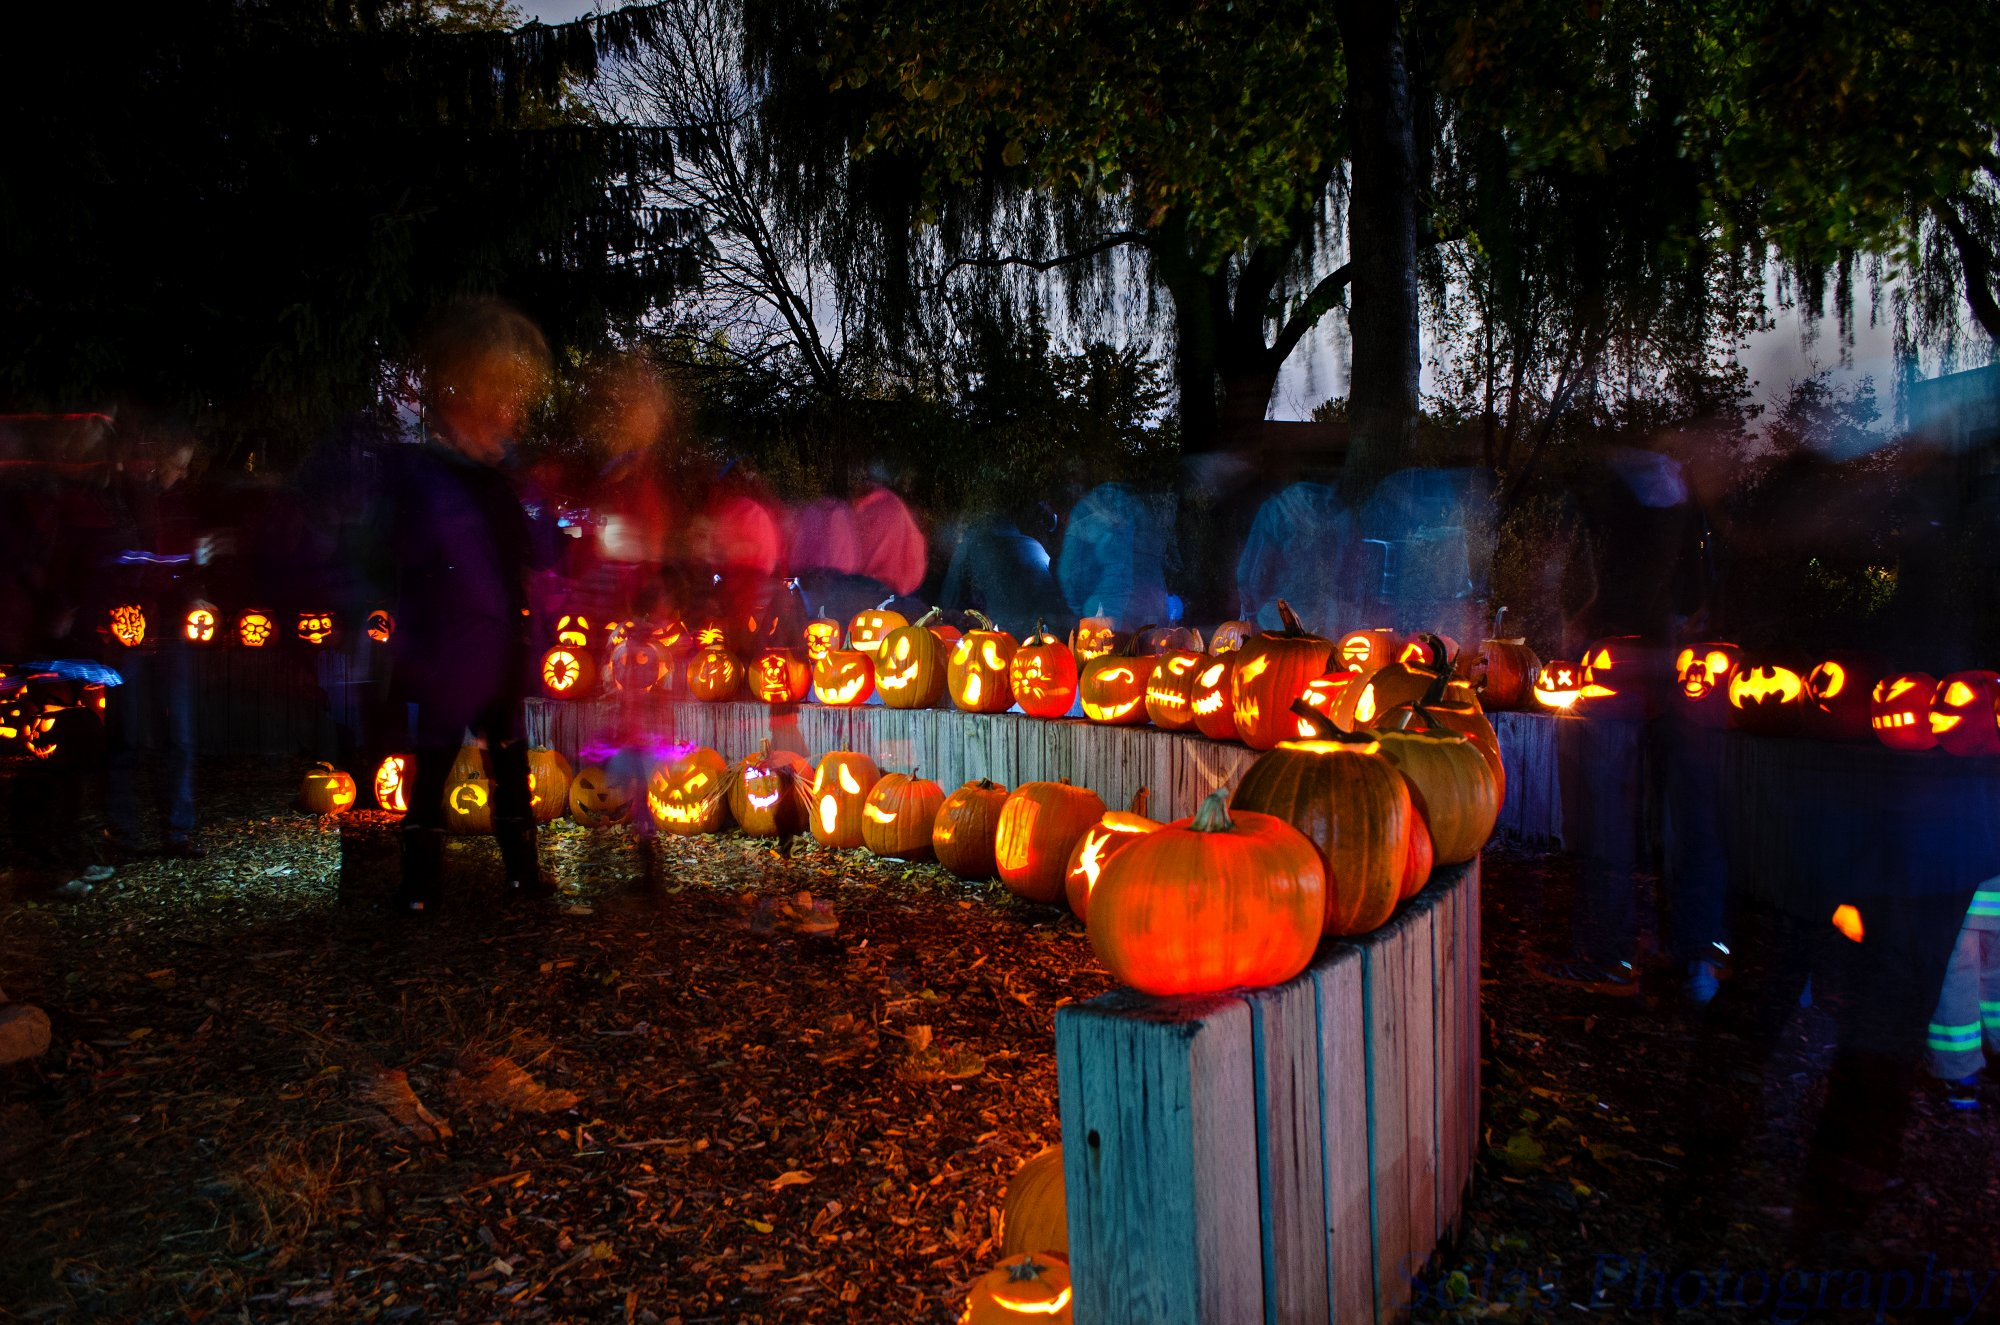 SHORA pumpkin parade 2015 Google image from http://www.shora.ca/wp-content/uploads/2015/05/DSC_0400.jpg